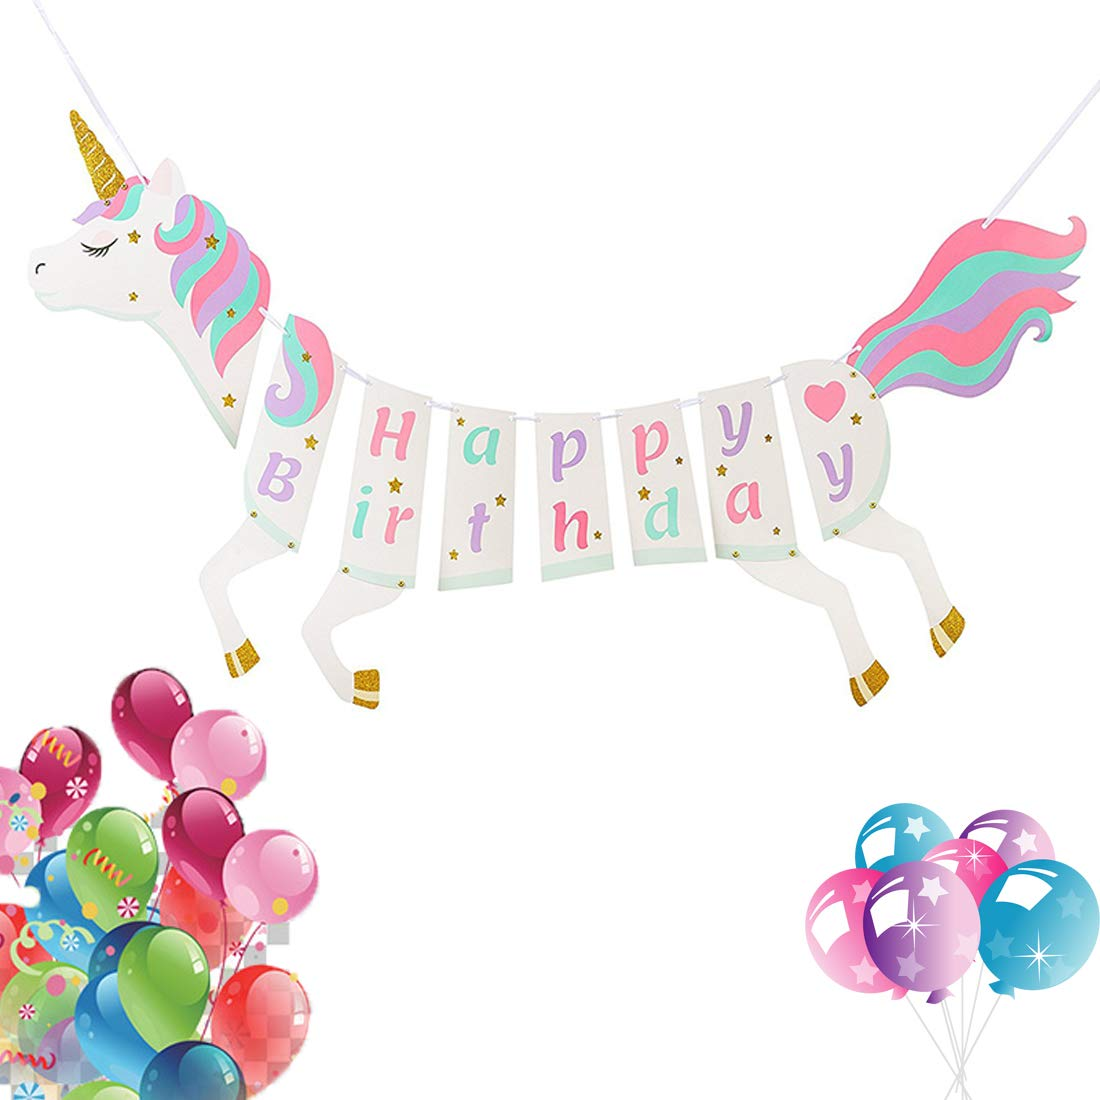 Vennke Unicorn Happy Birthday Banner Party Supplies Decorations With Sparkle Gold Glitter Magical Pastel